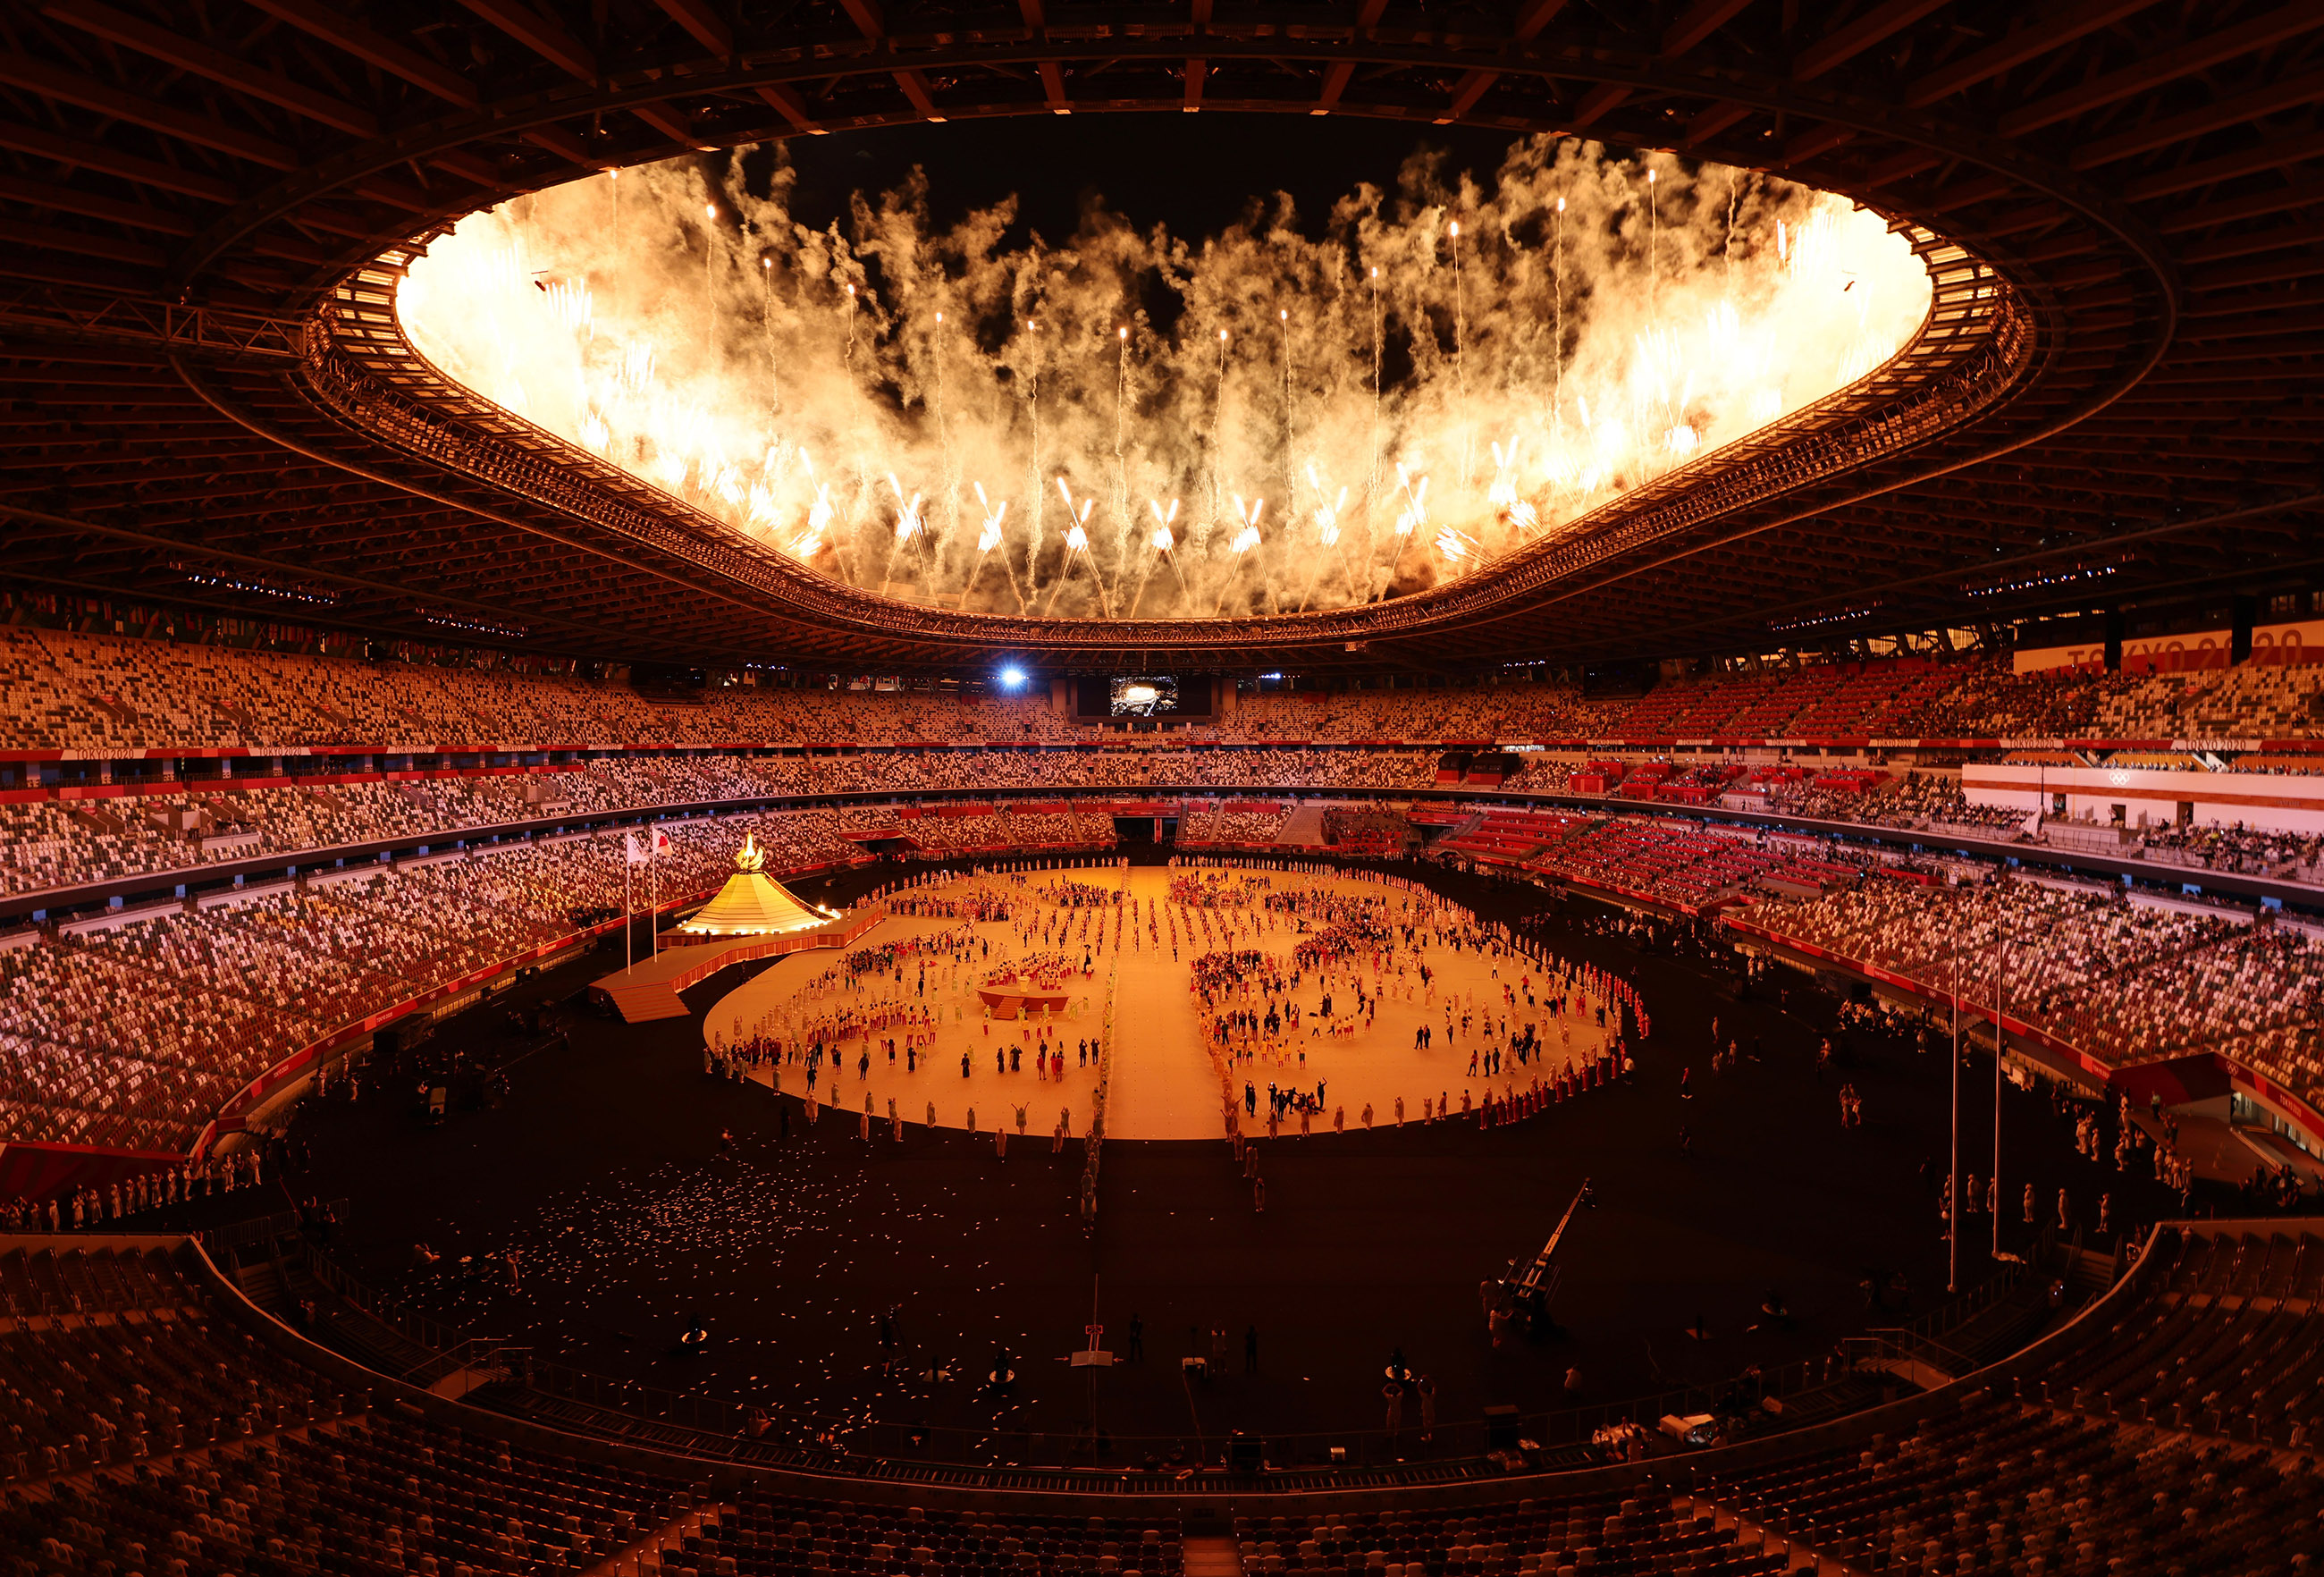 Tokyo 2020 Olympics - The Tokyo 2020 Olympics Opening Ceremony - Olympic Stadium, Tokyo, Japan - July 23, 2021. General view inside the stadium after the lighting the Olympic cauldron at the opening ceremony. (Edited)